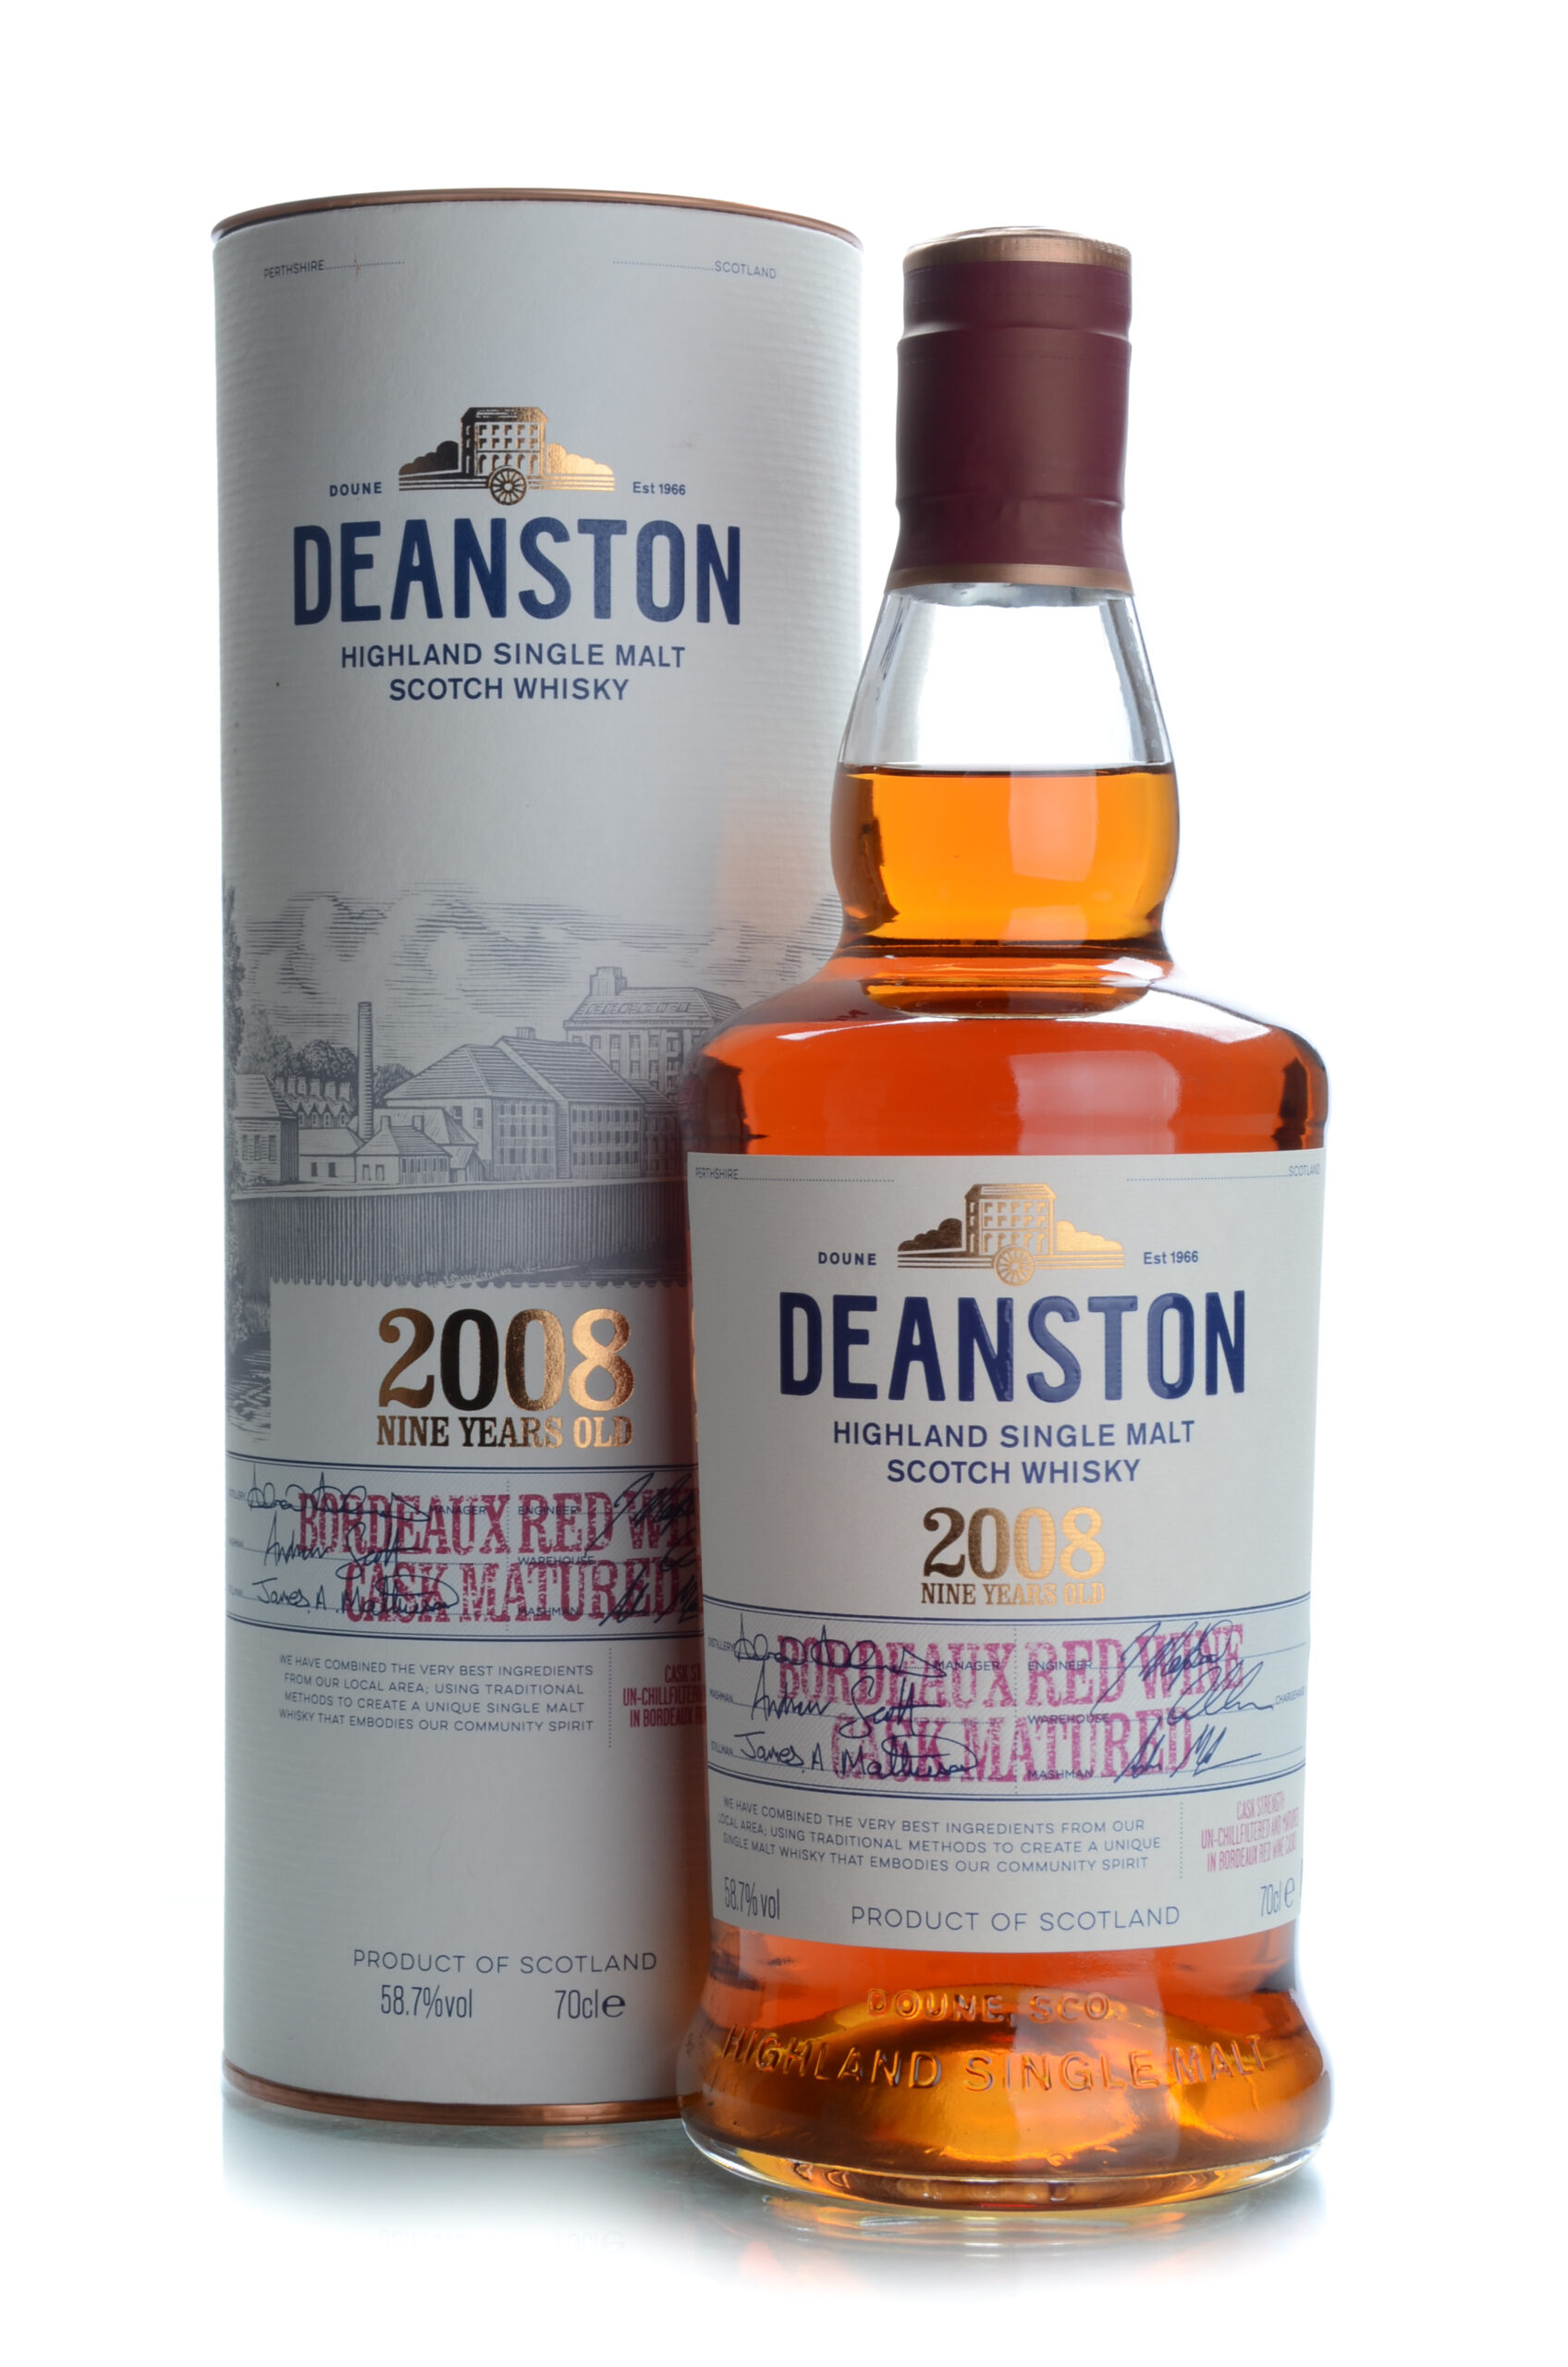 Deanston 9 years bordeaux